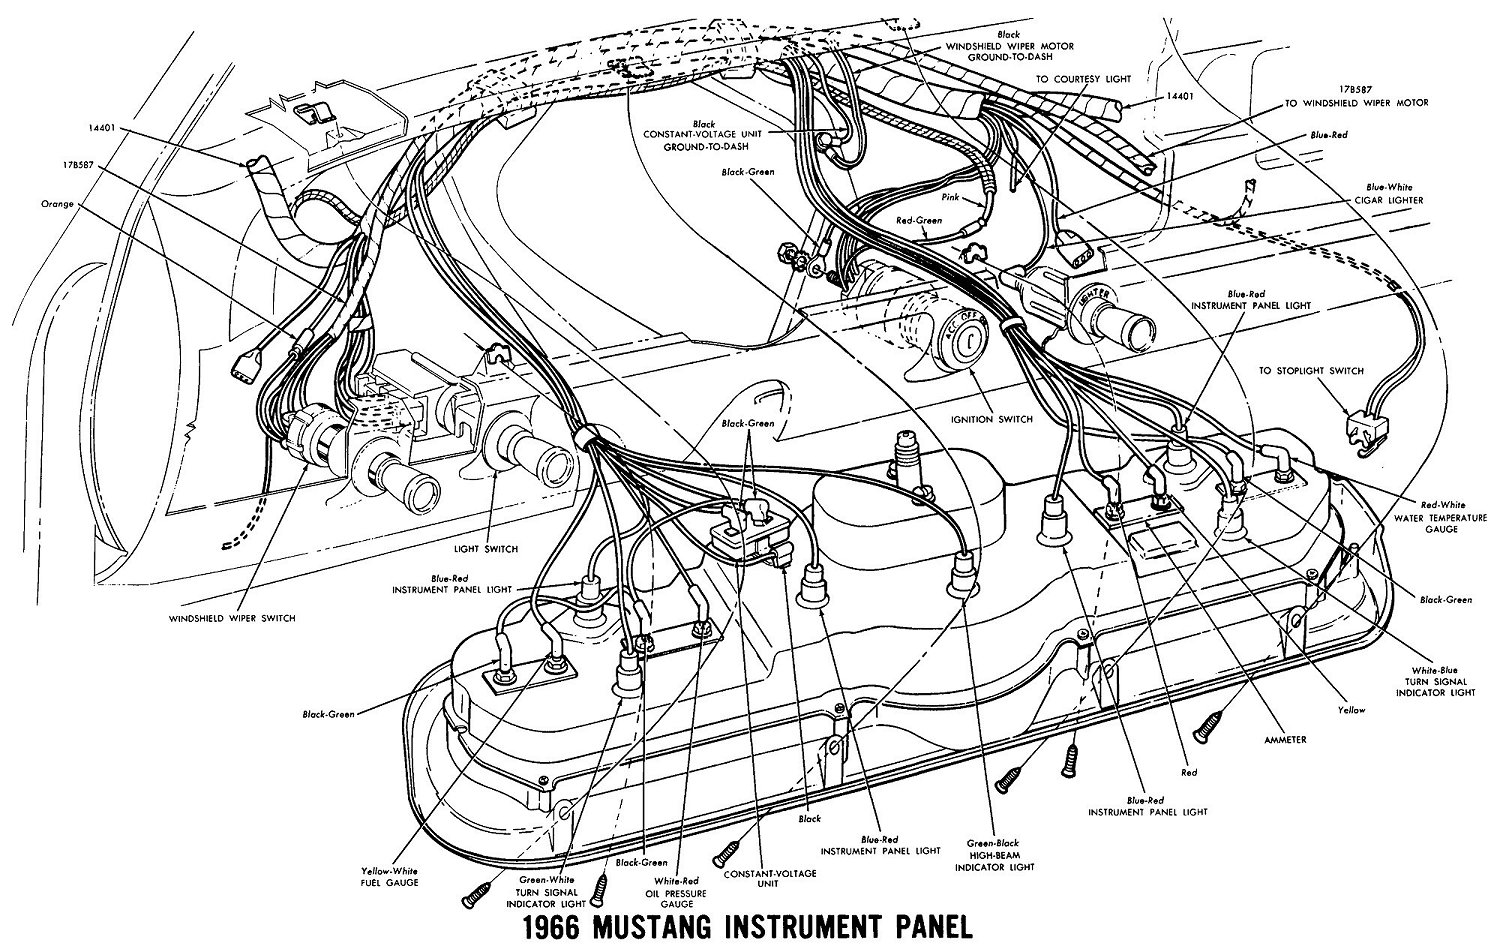 66InstrumentWiring lelu's 66 mustang 1966 mustang wiring diagrams 1966 mustang wiring diagrams at nearapp.co